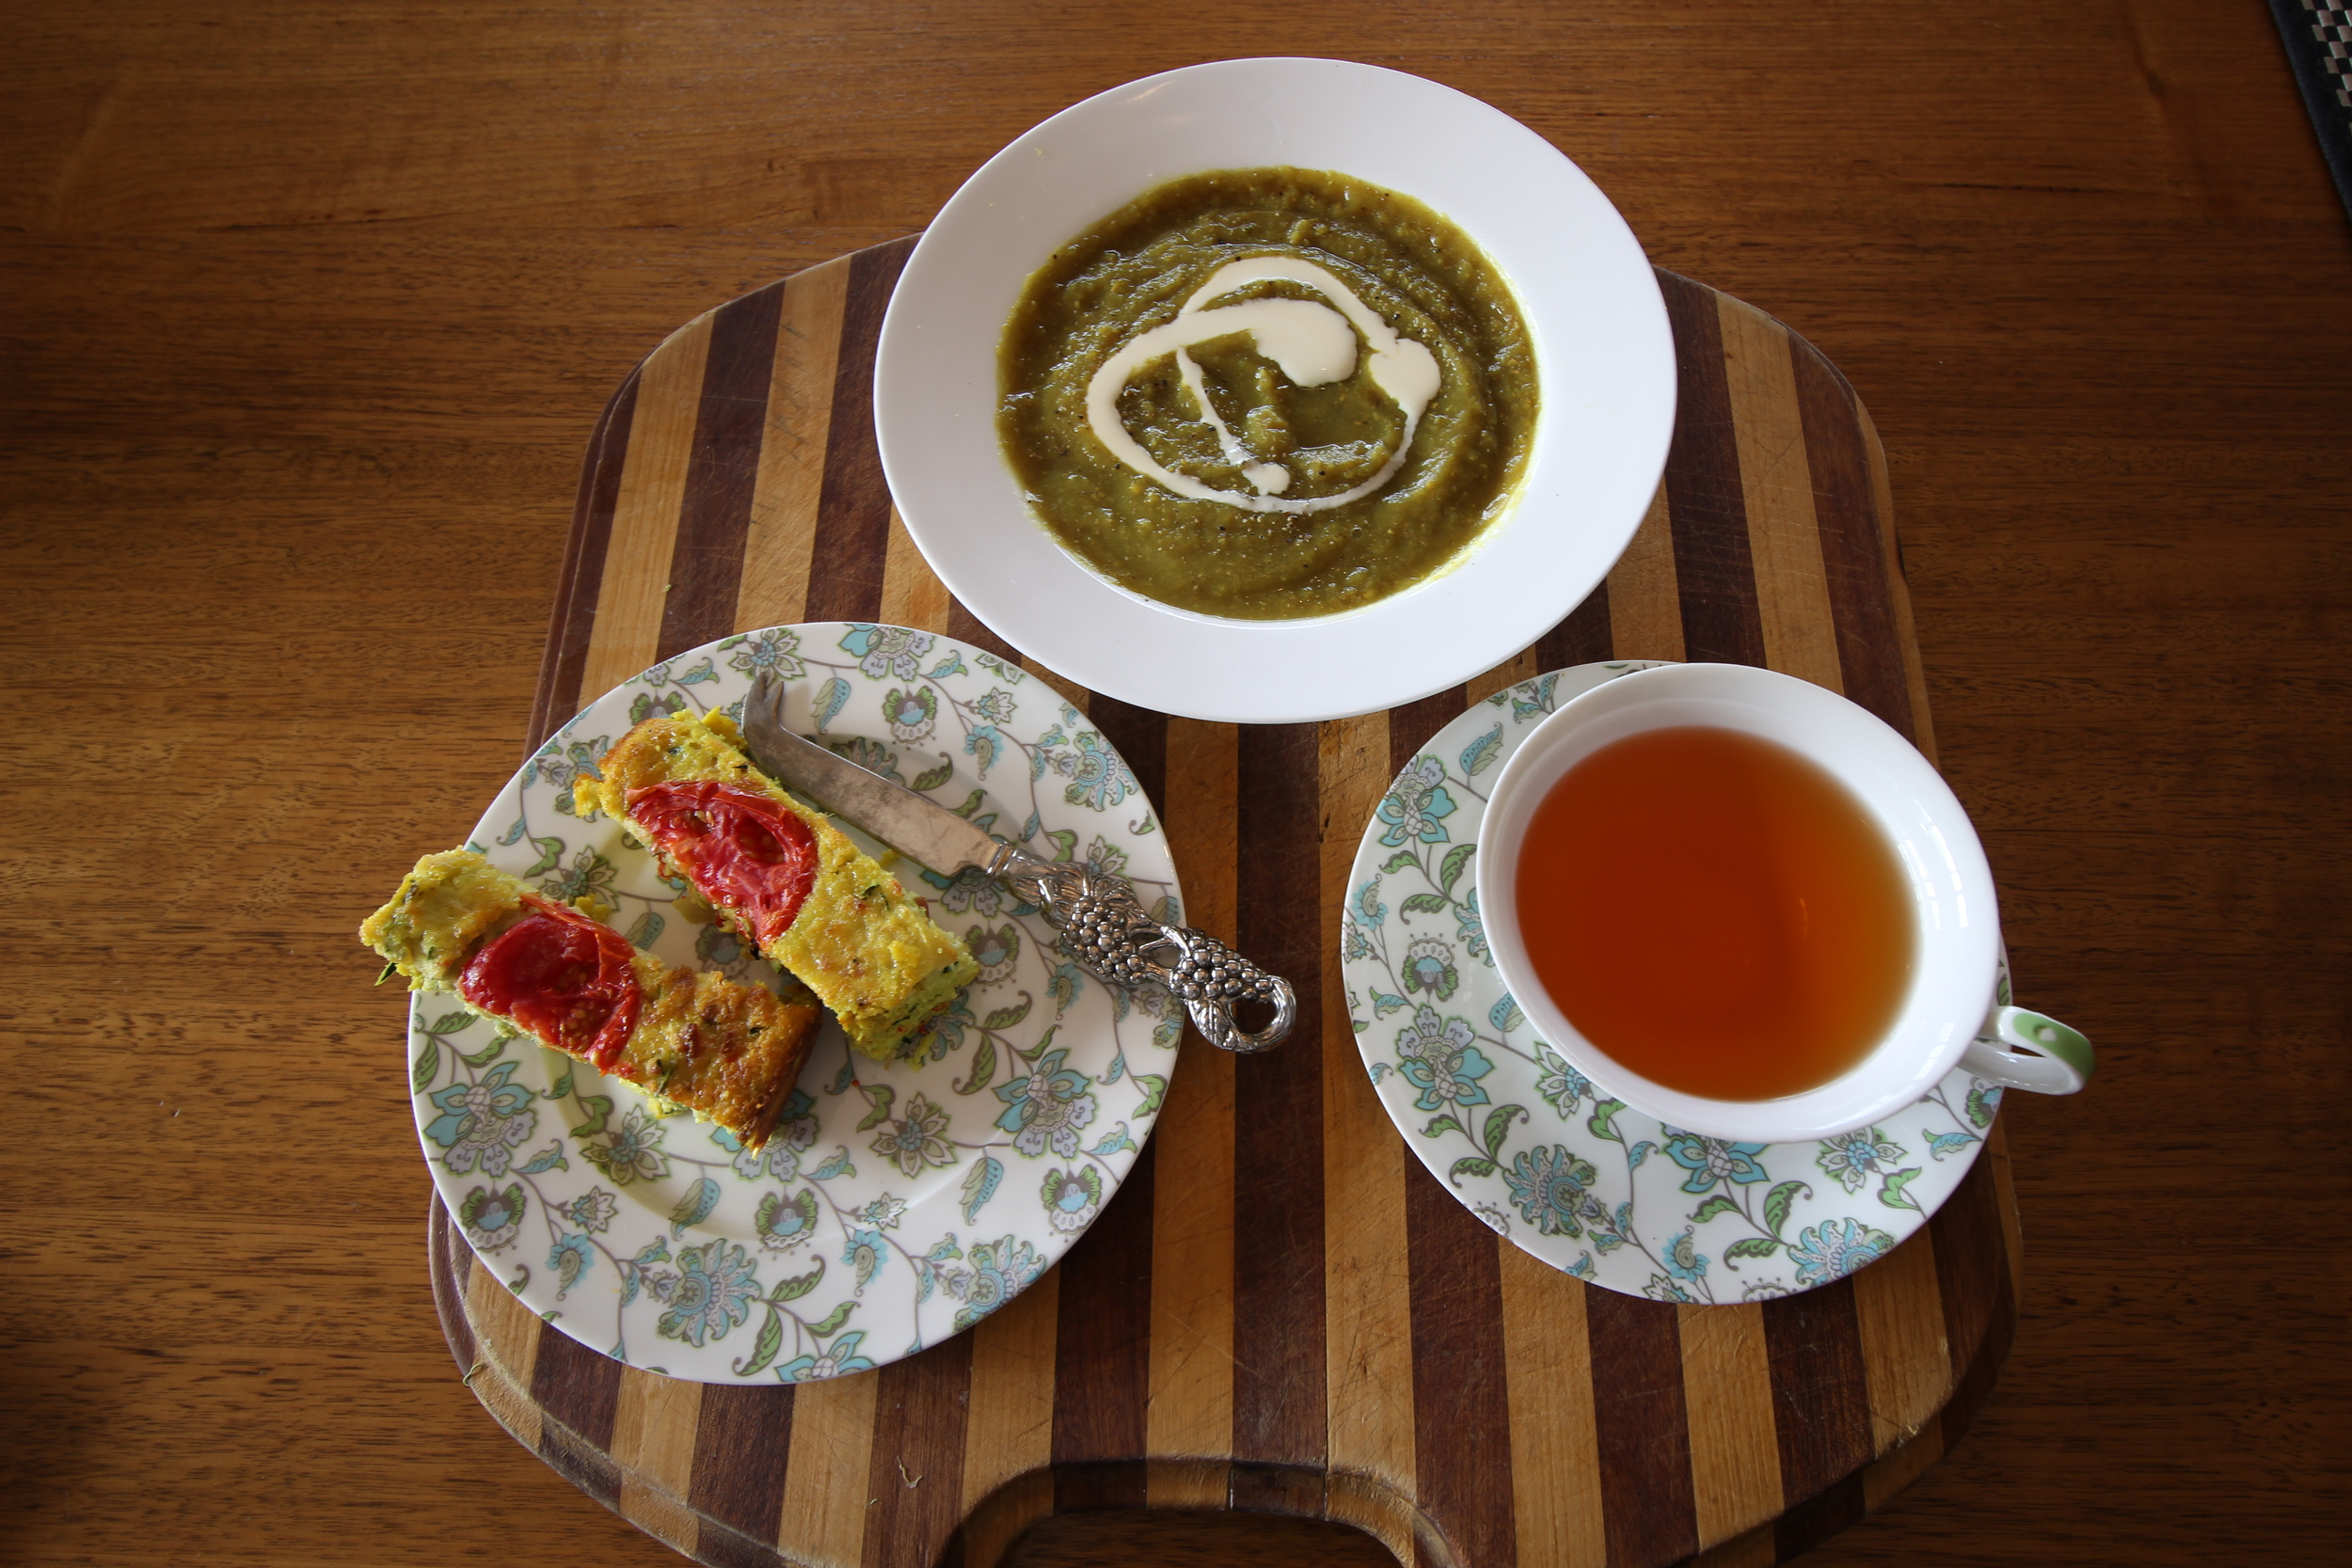 zucchini slice, zucchini and lentil soup and a cup of earl grey tea.. fair to say I think my  mum was pleased with her lunch. It tastes so good she didn't even notice there was no cheese in the slice or cream in the soup.. tricked her with some natural Jalna pot set yogurt swirled on top.